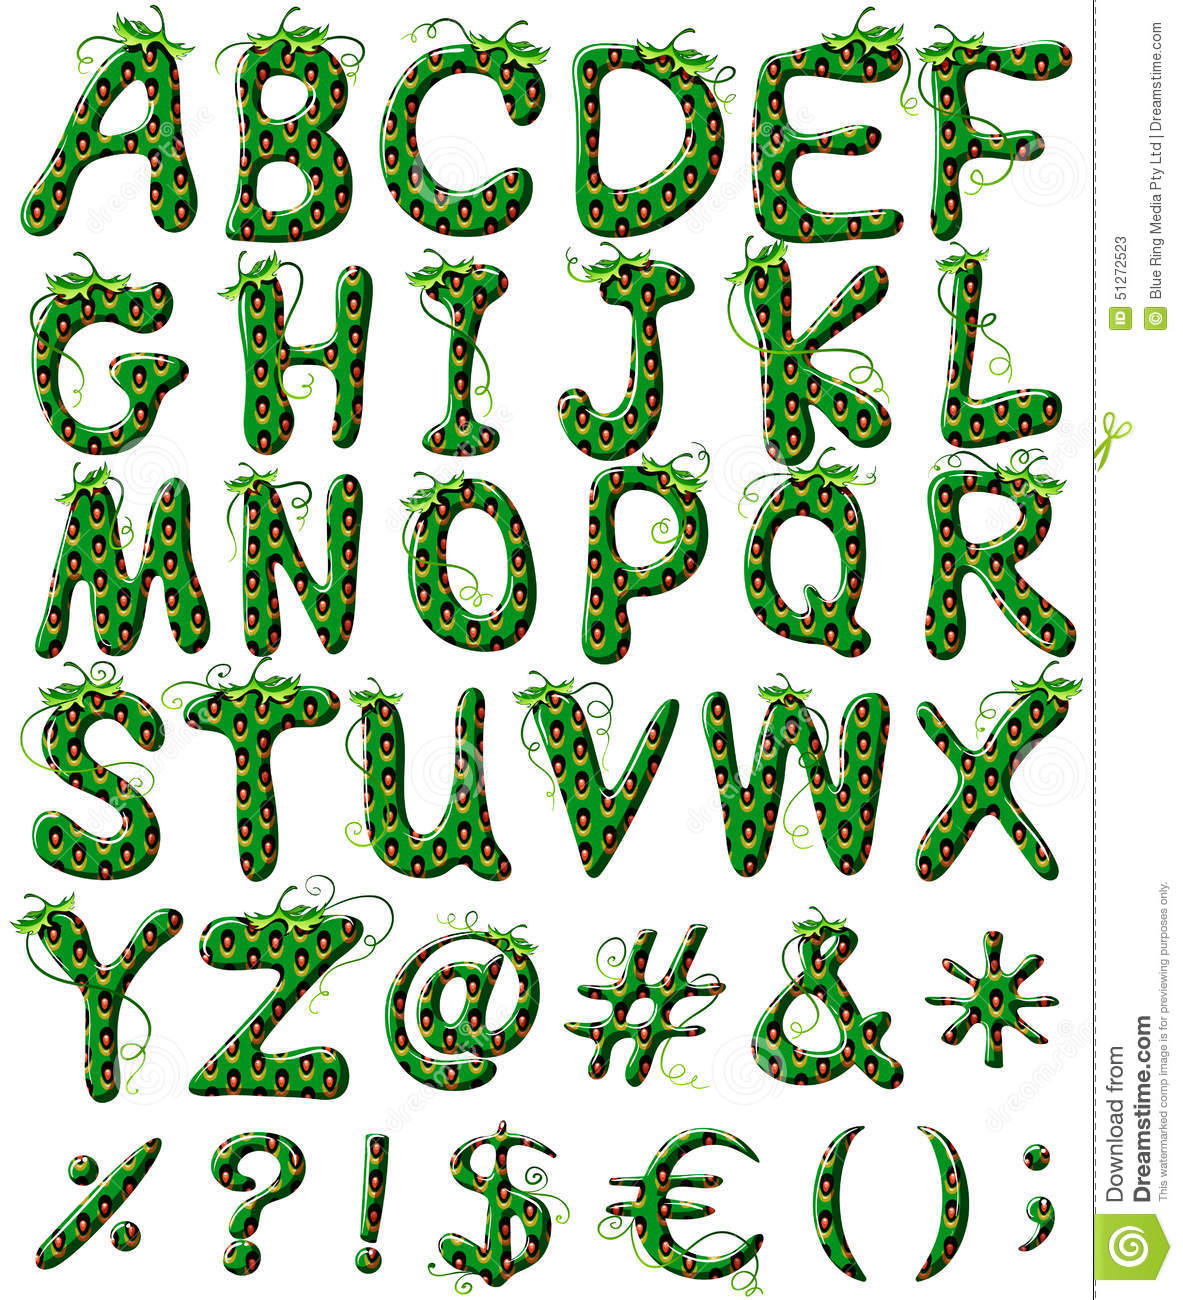 Capital Letters Of The Alphabet In Green Color Stock Vector ...